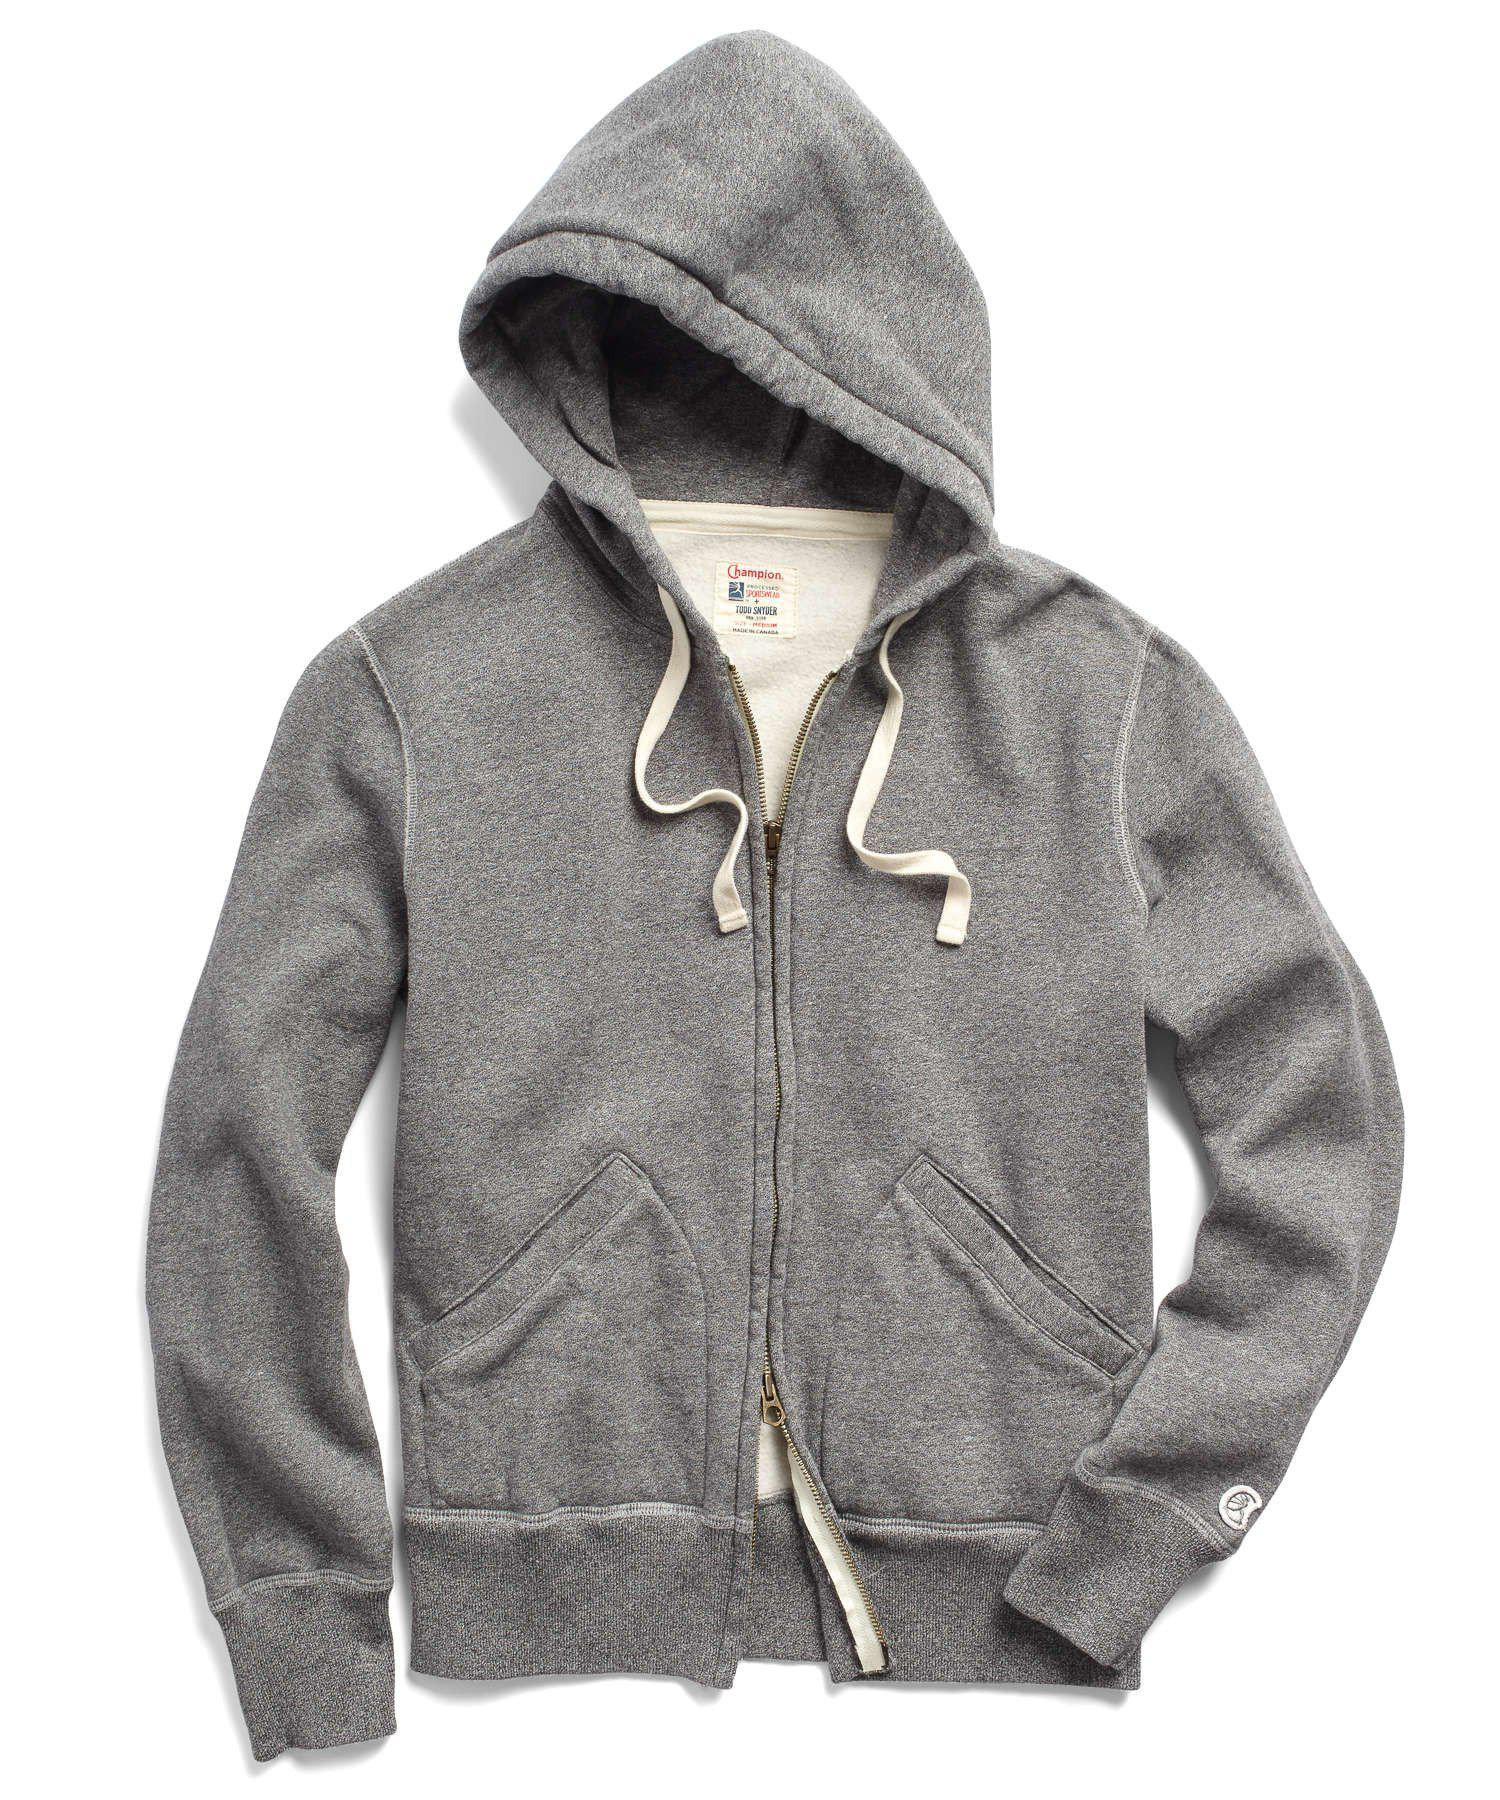 f01d47630795 Lyst - Todd Snyder Classic Fullzip Hoodie In Salt And Pepper in Gray ...